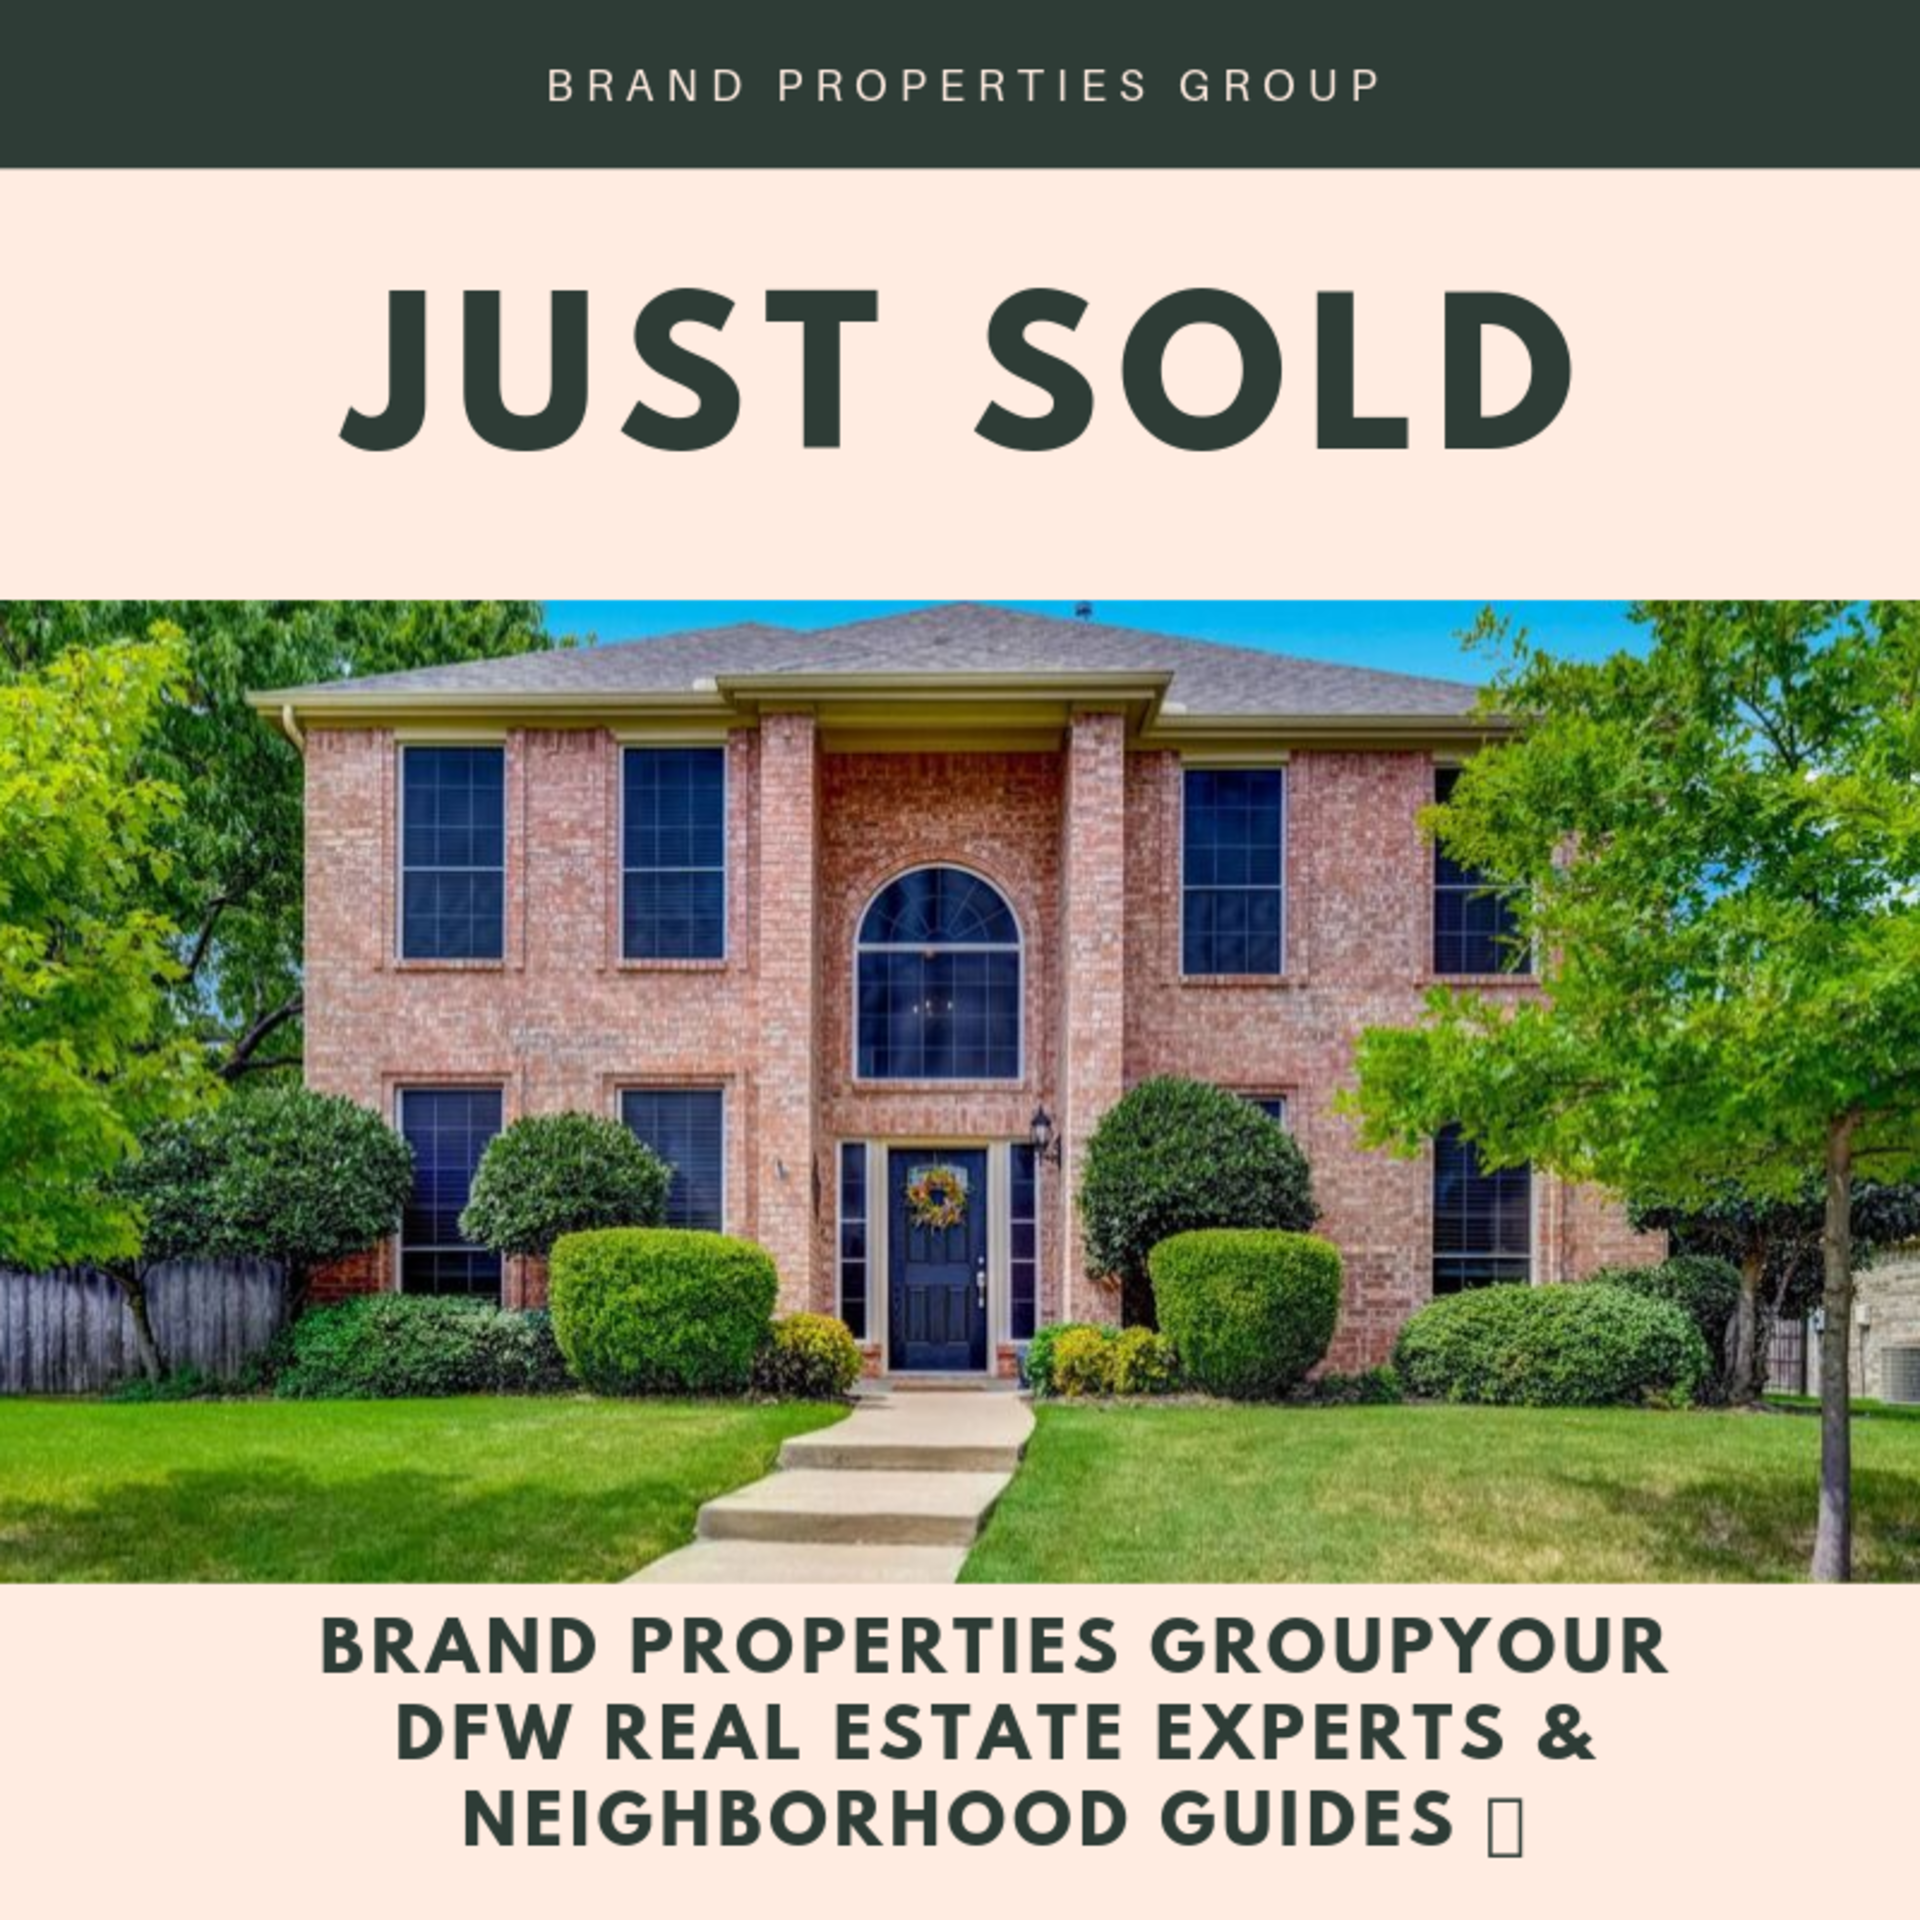 Another Brand Properties Group home SOLD!